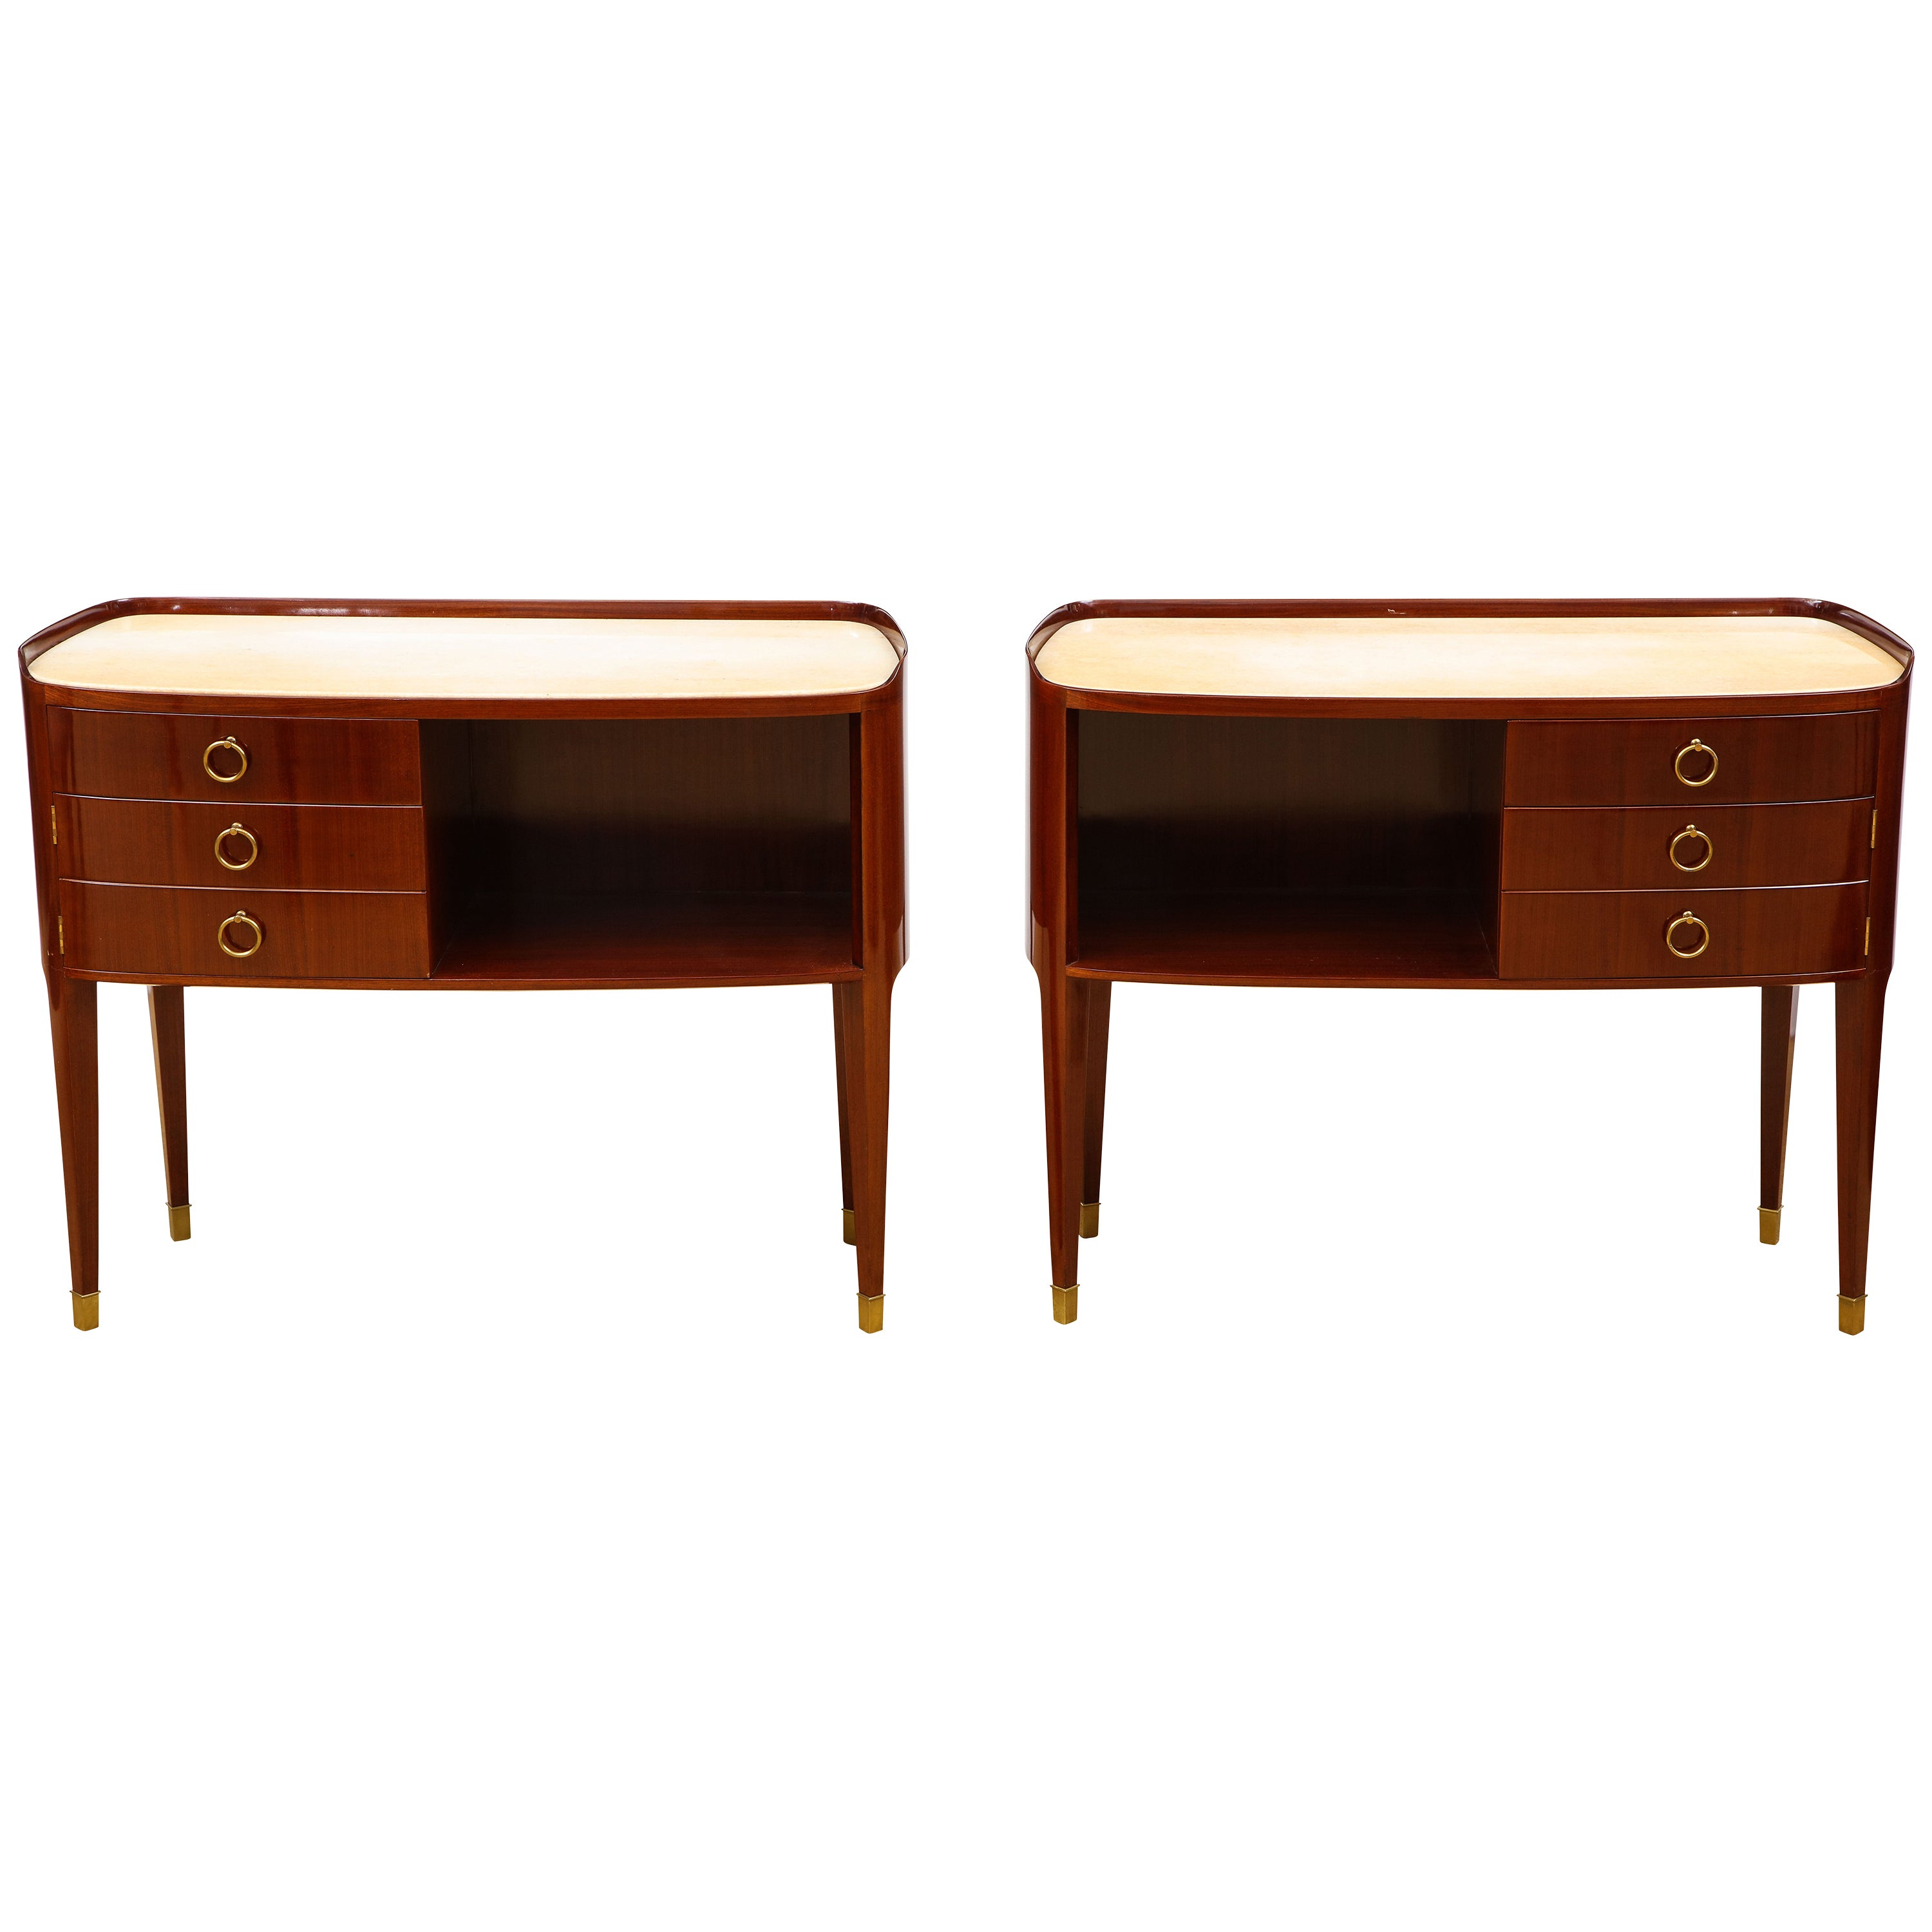 Pair of Unique Commodes, by Paolo Buffa